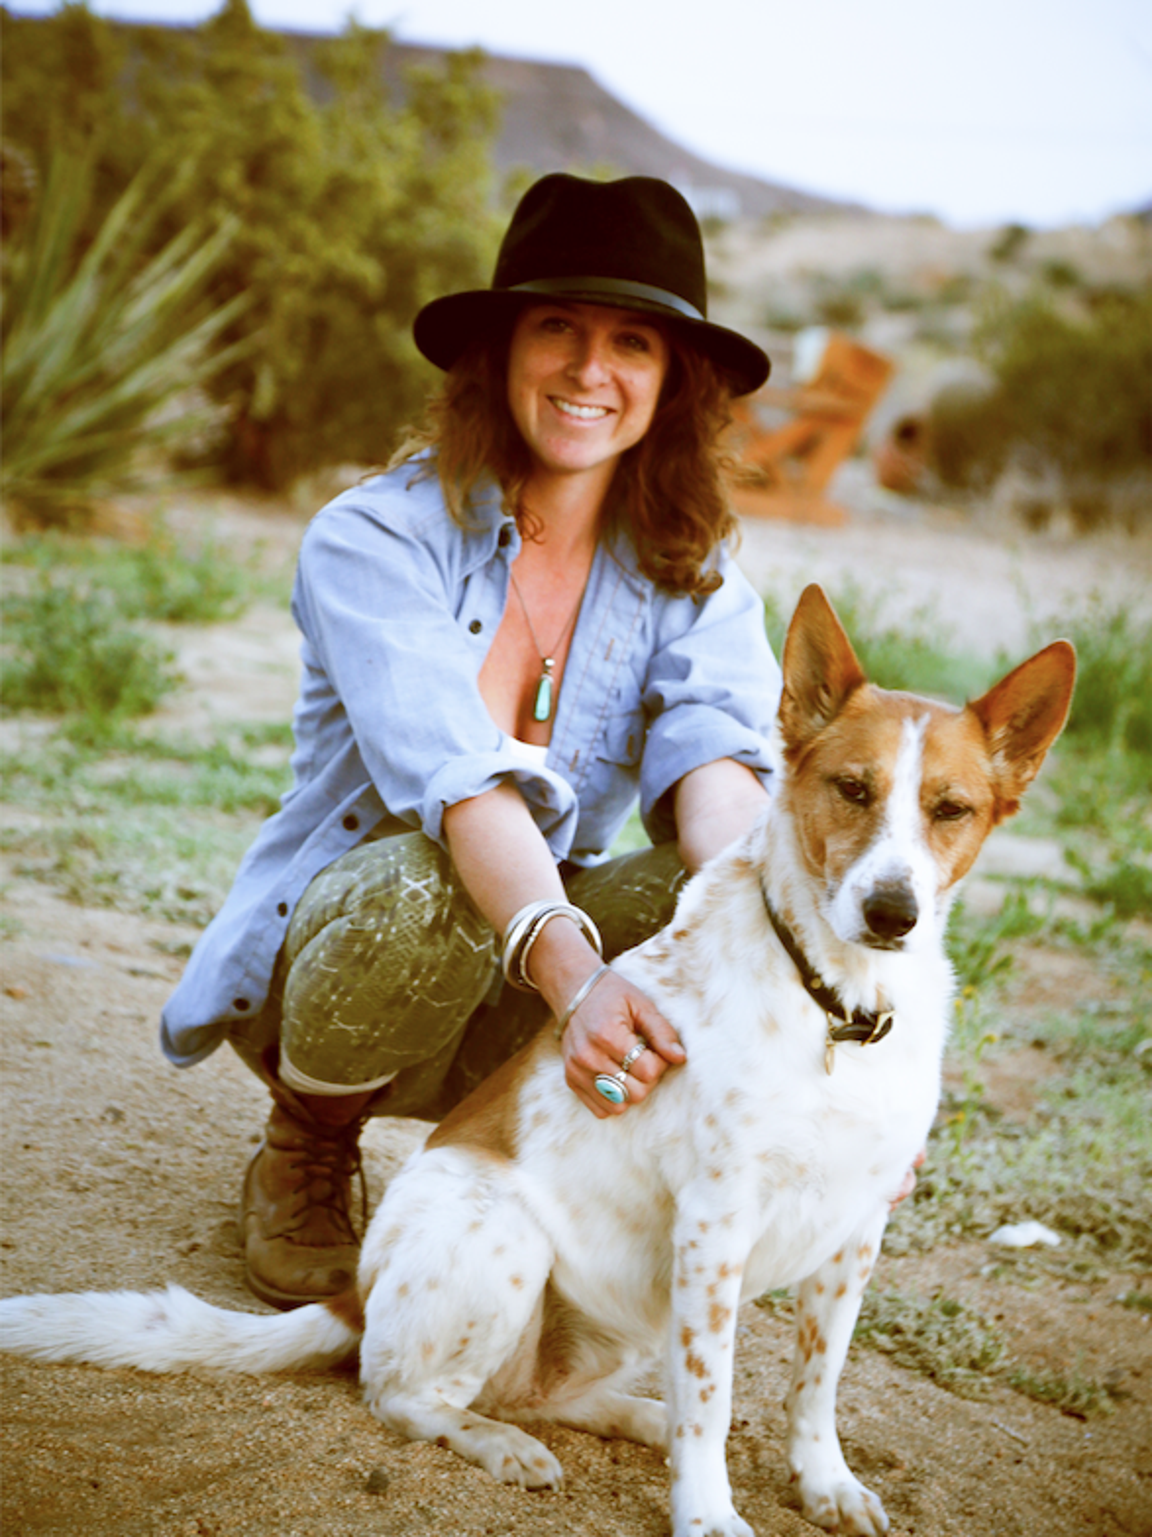 Cannimal founder Erika Valentina Doria and her dog,